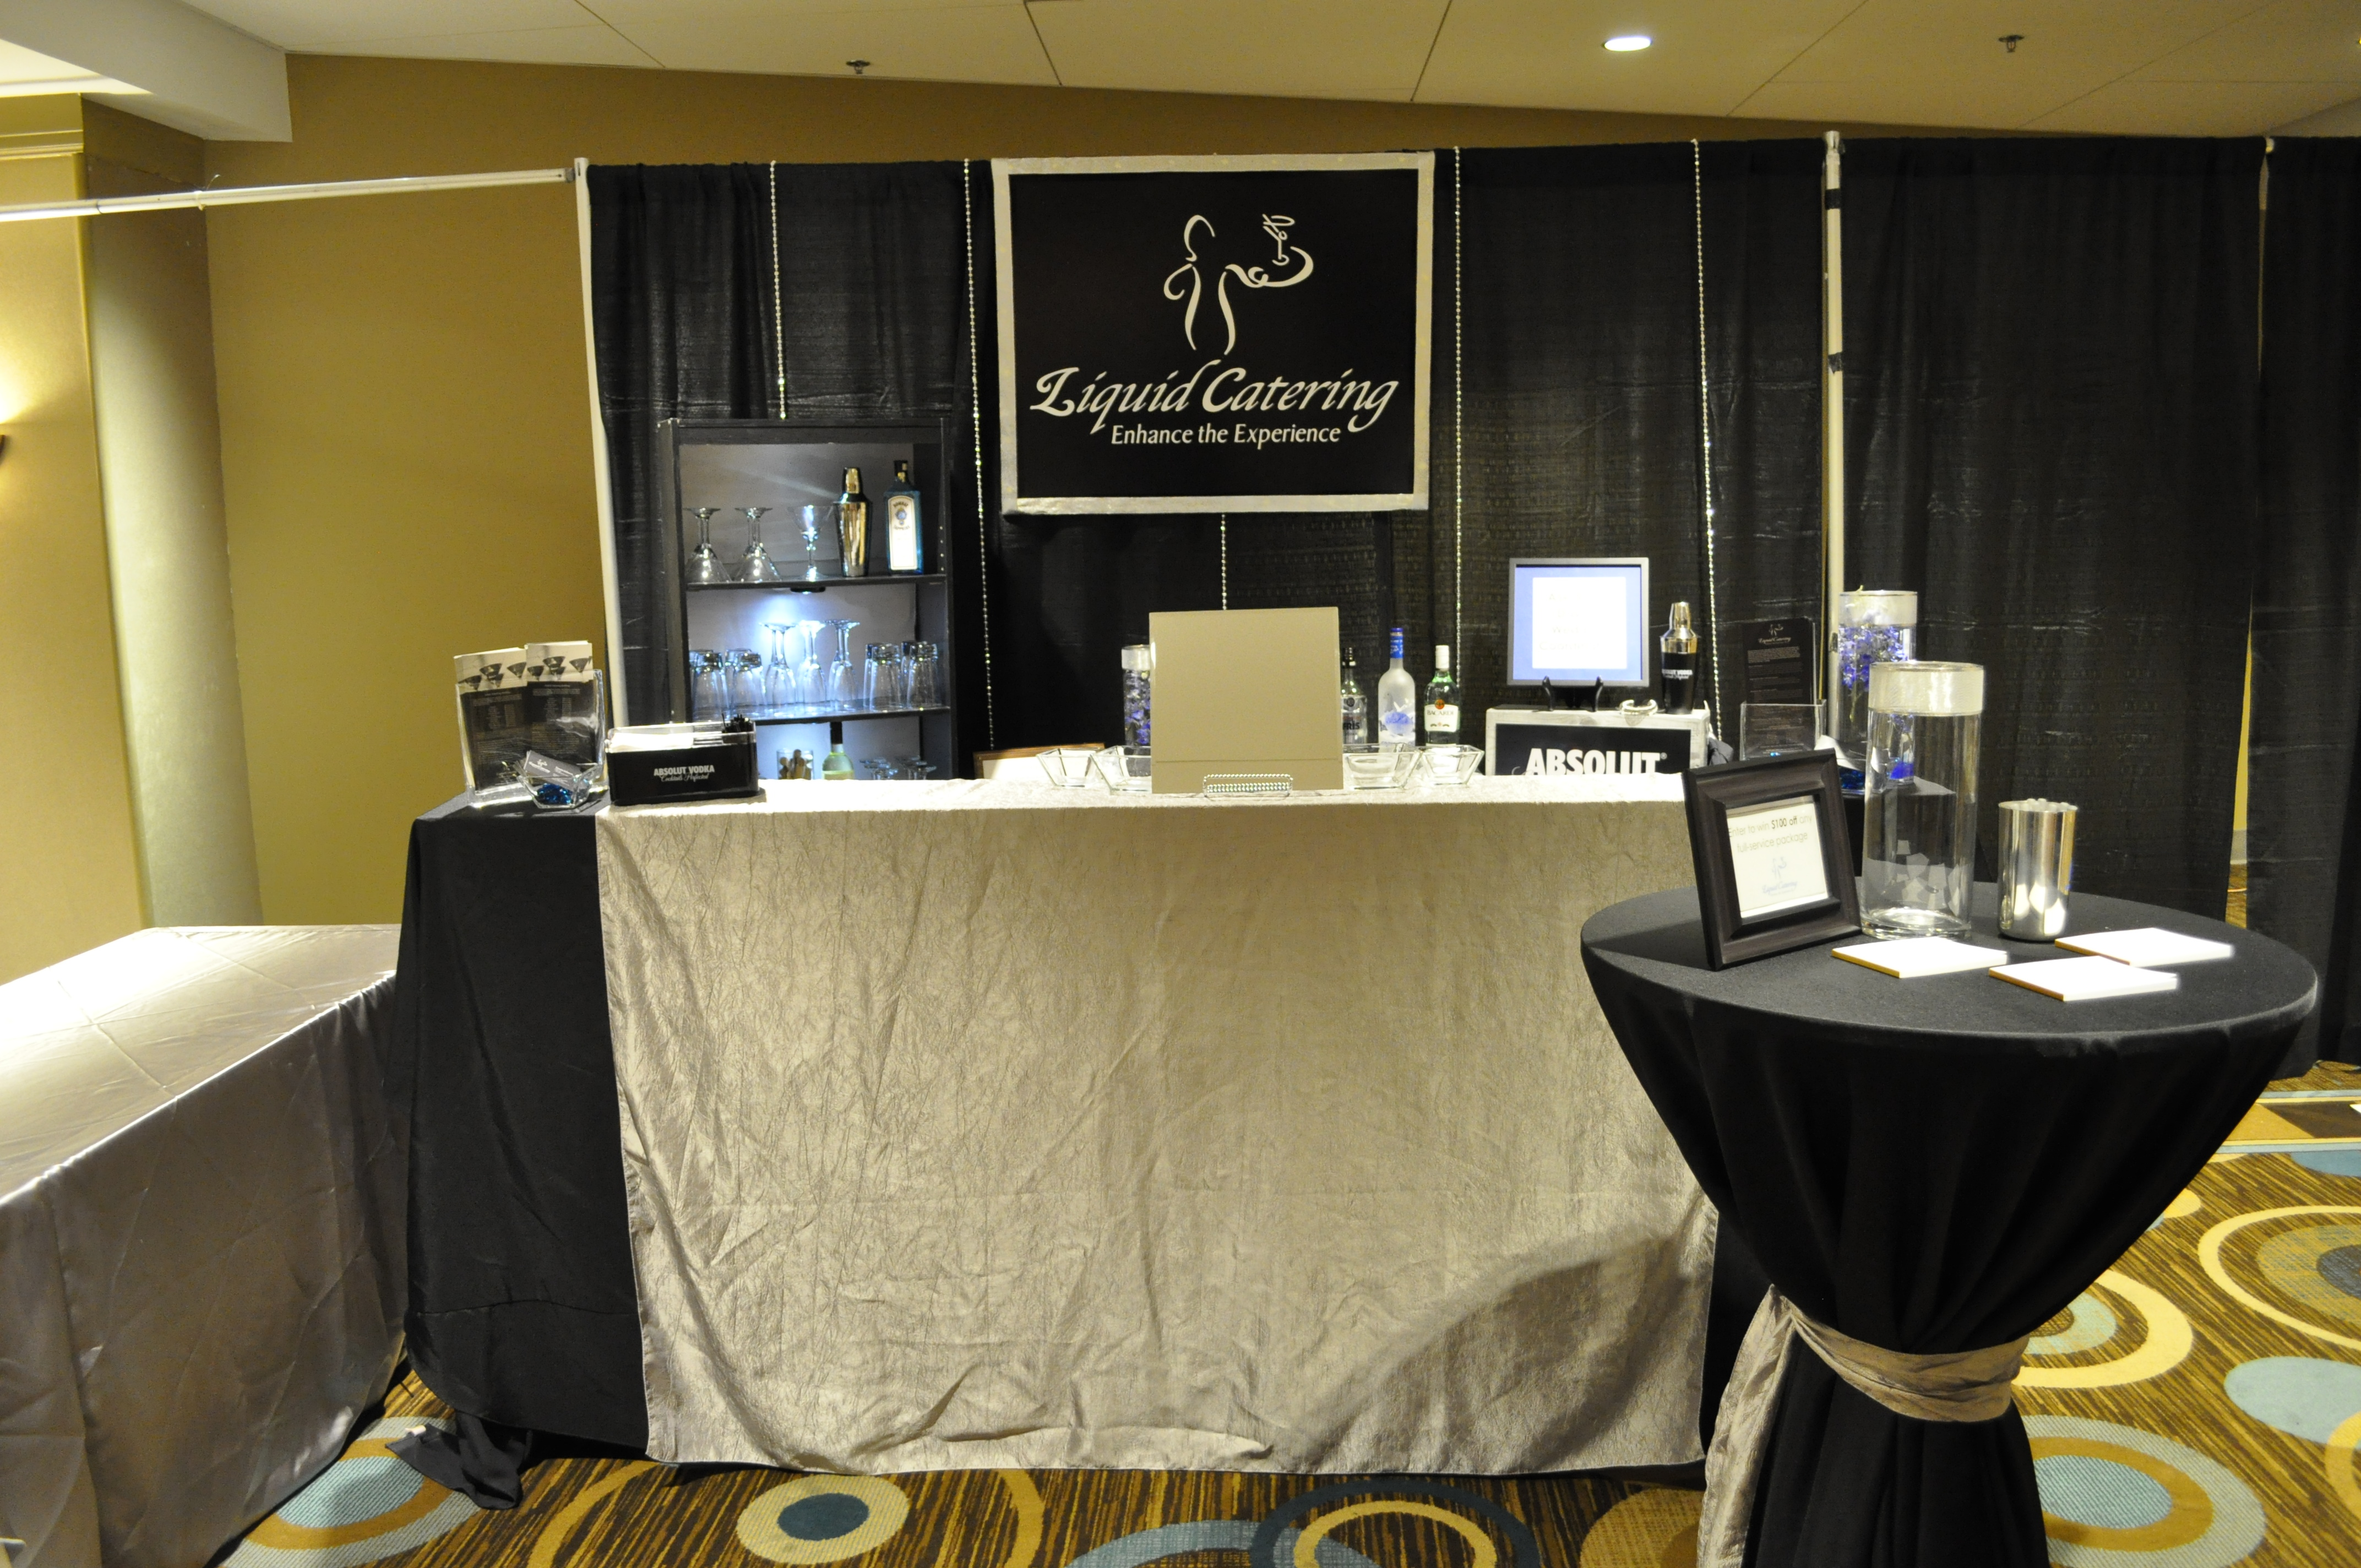 Wedding Expo Booth Ideas: I Went To A Bridal Show- Now What???